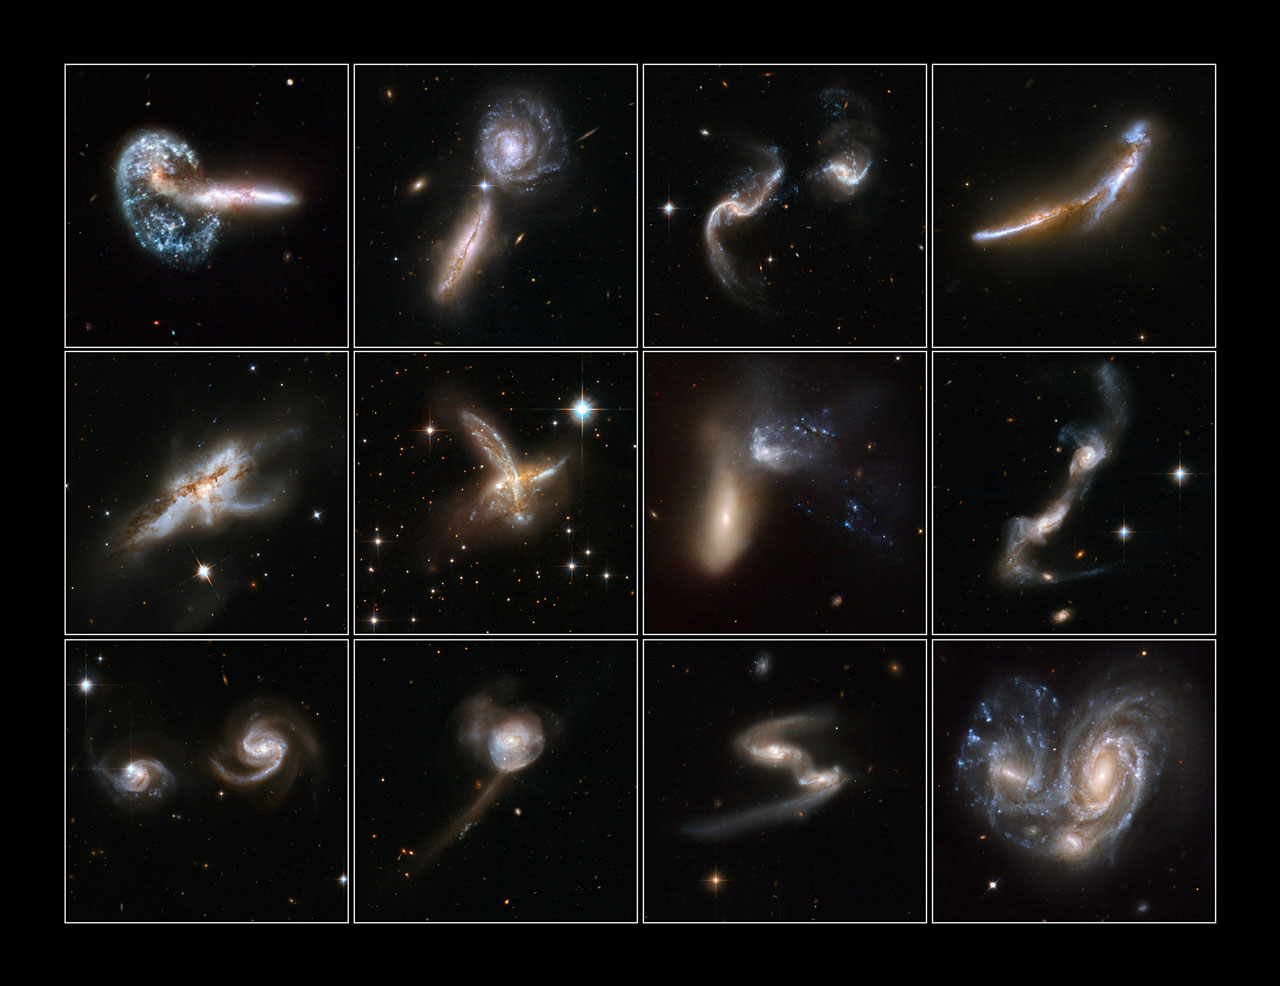 Galaxies Gone Wild! - Top 12 images